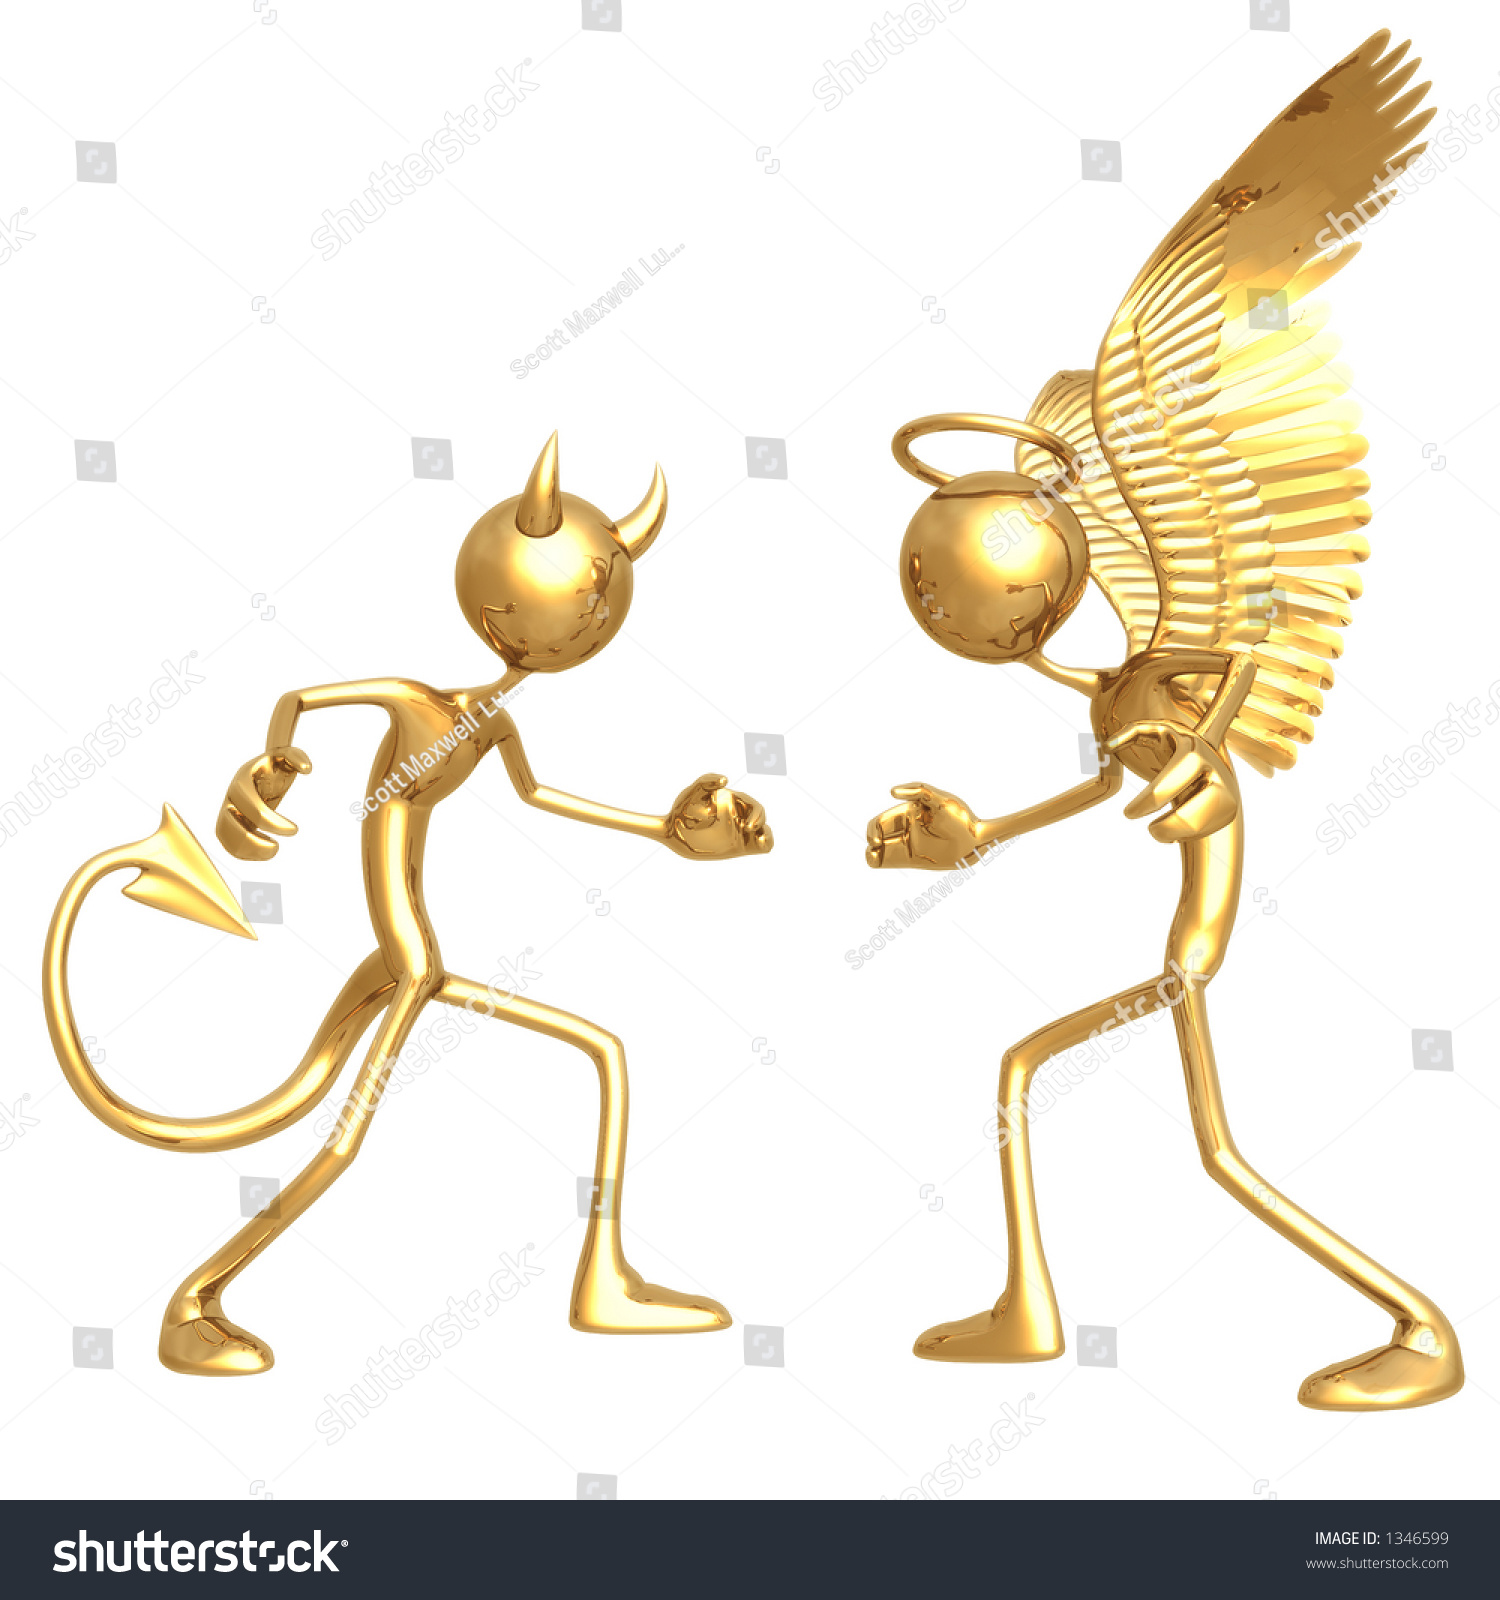 Good Vs Evil Stock Illustration 1346599 - Shutterstock